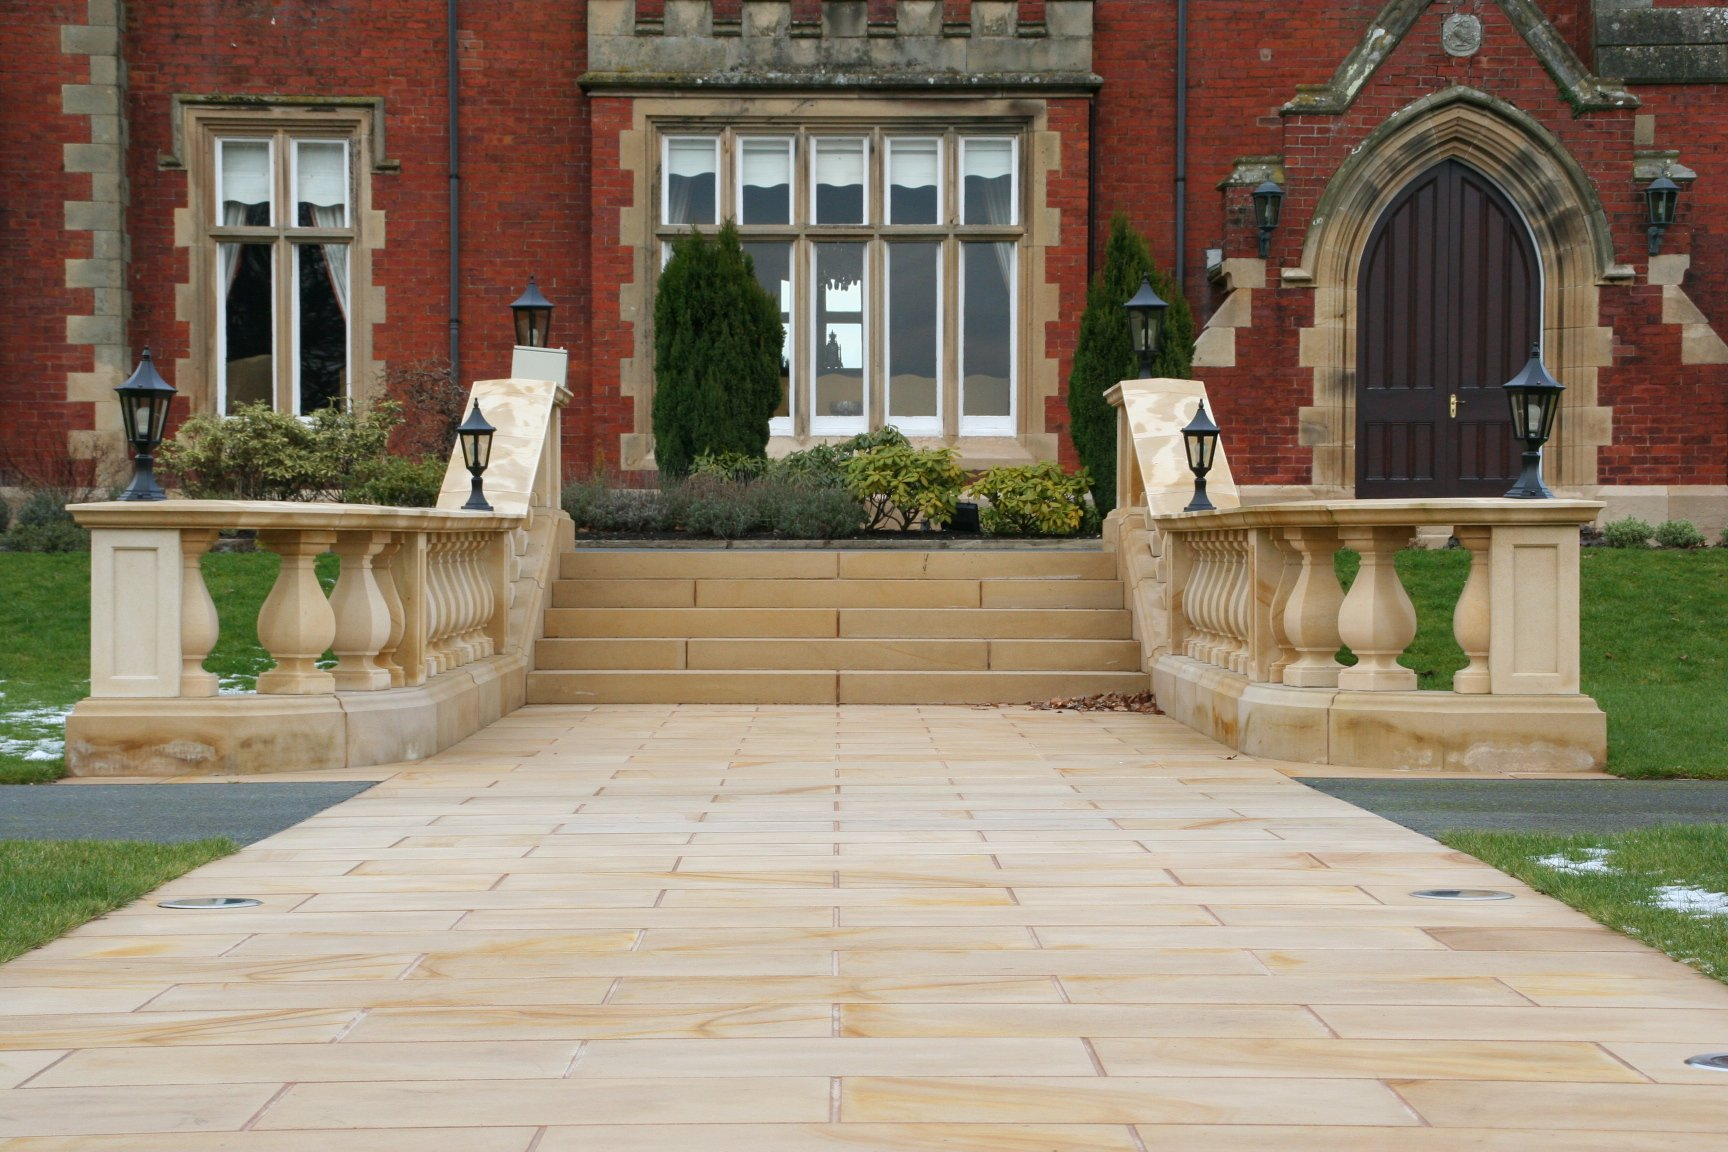 Buff Sandstone Paving and Staircase by Cumbrian Stone